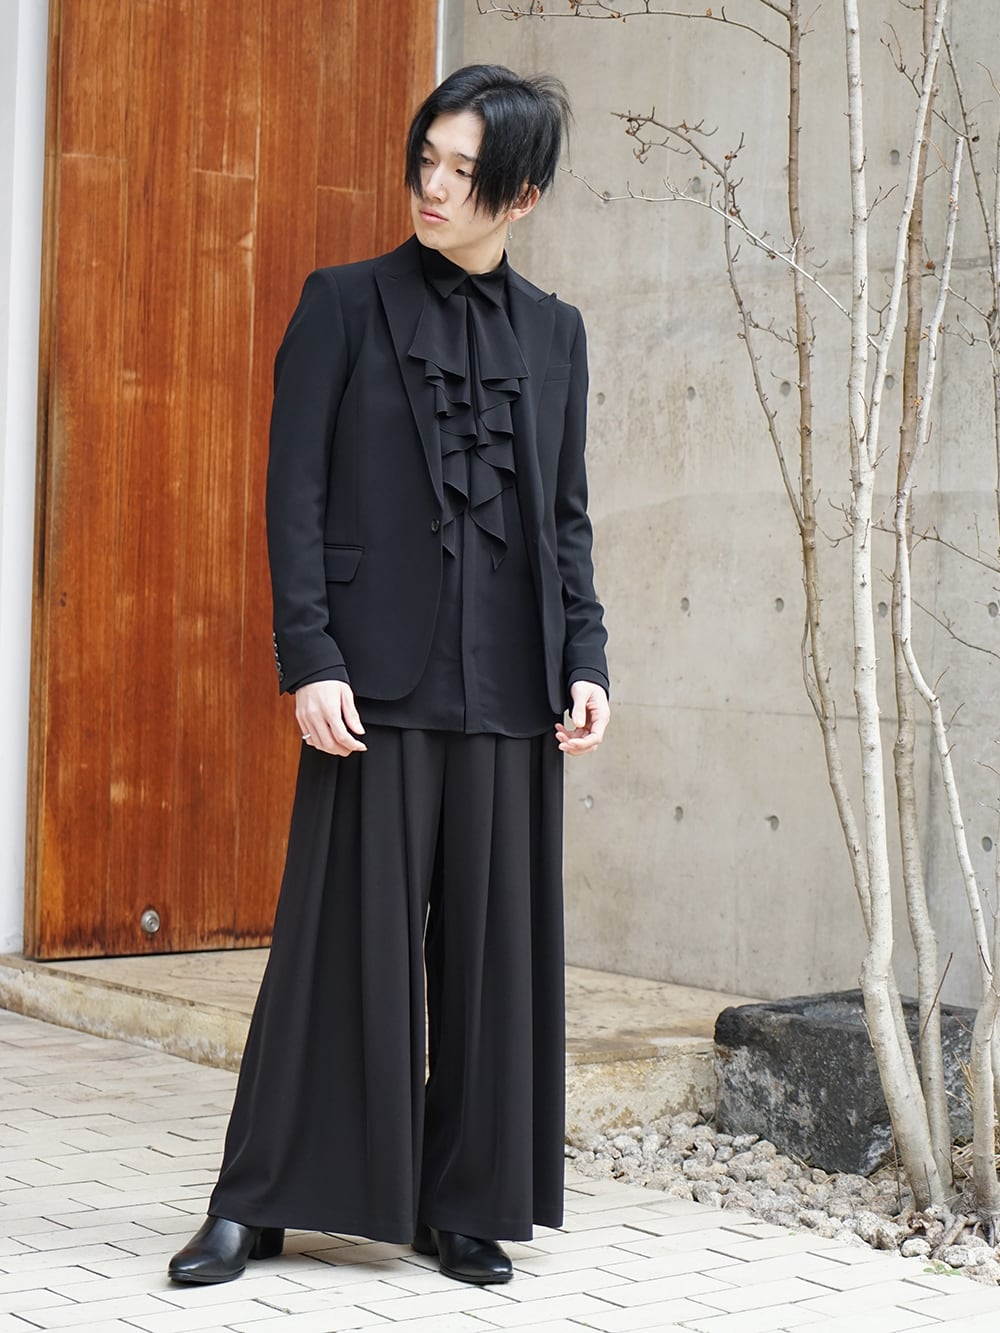 Galaabend 2020SS Black Dress Styling - 1-001